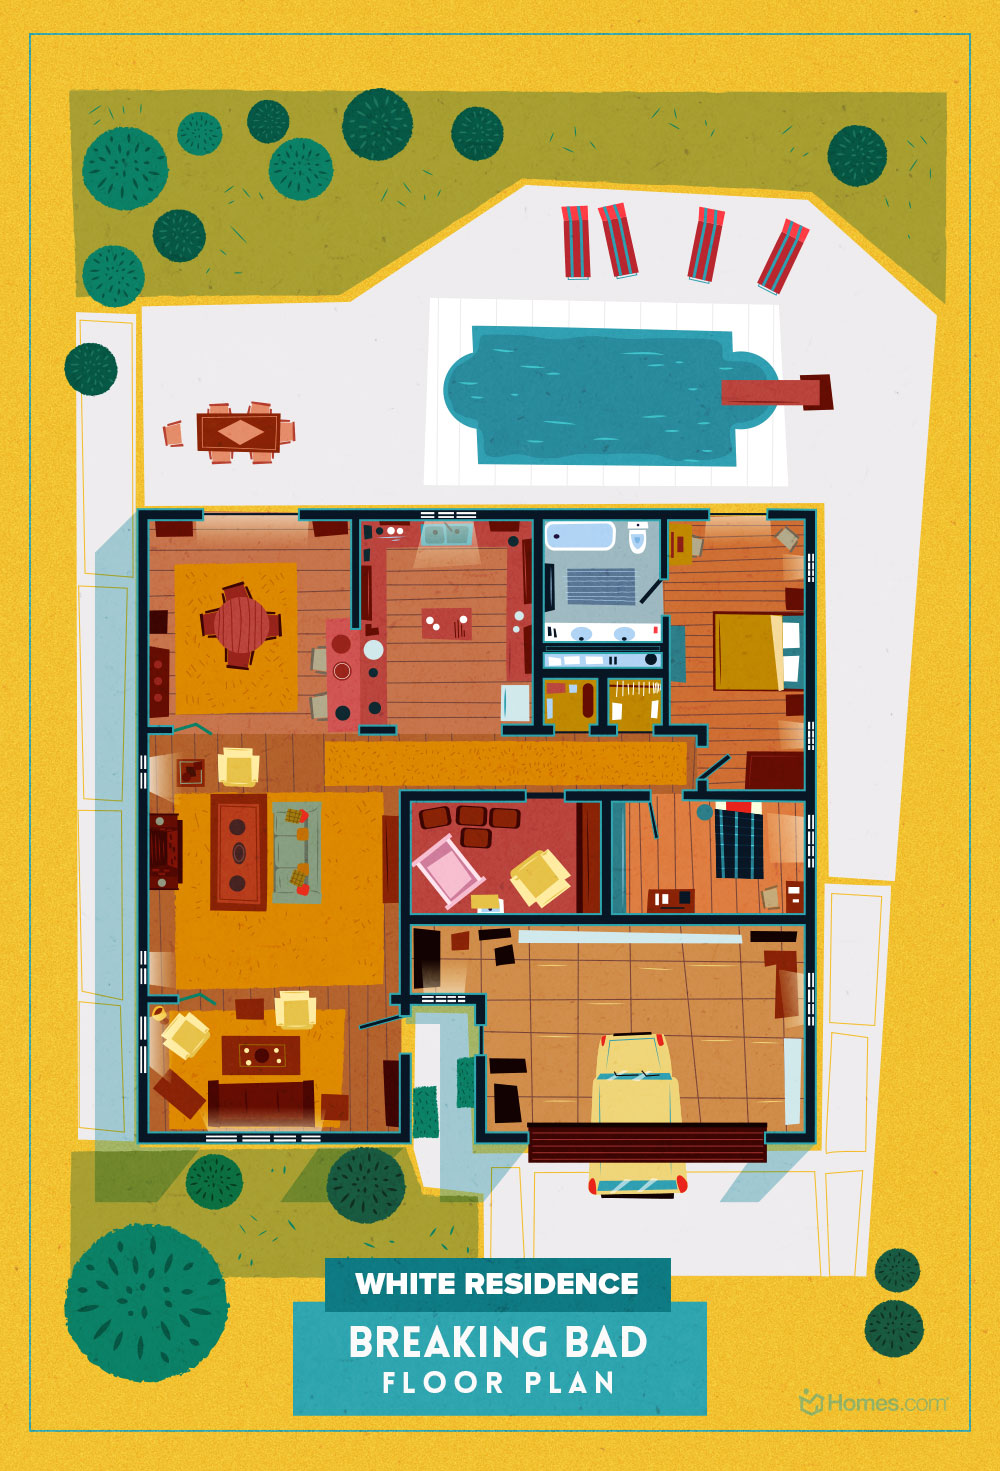 Floor Plans Of Popular TV Show Homes - Breaking Bad